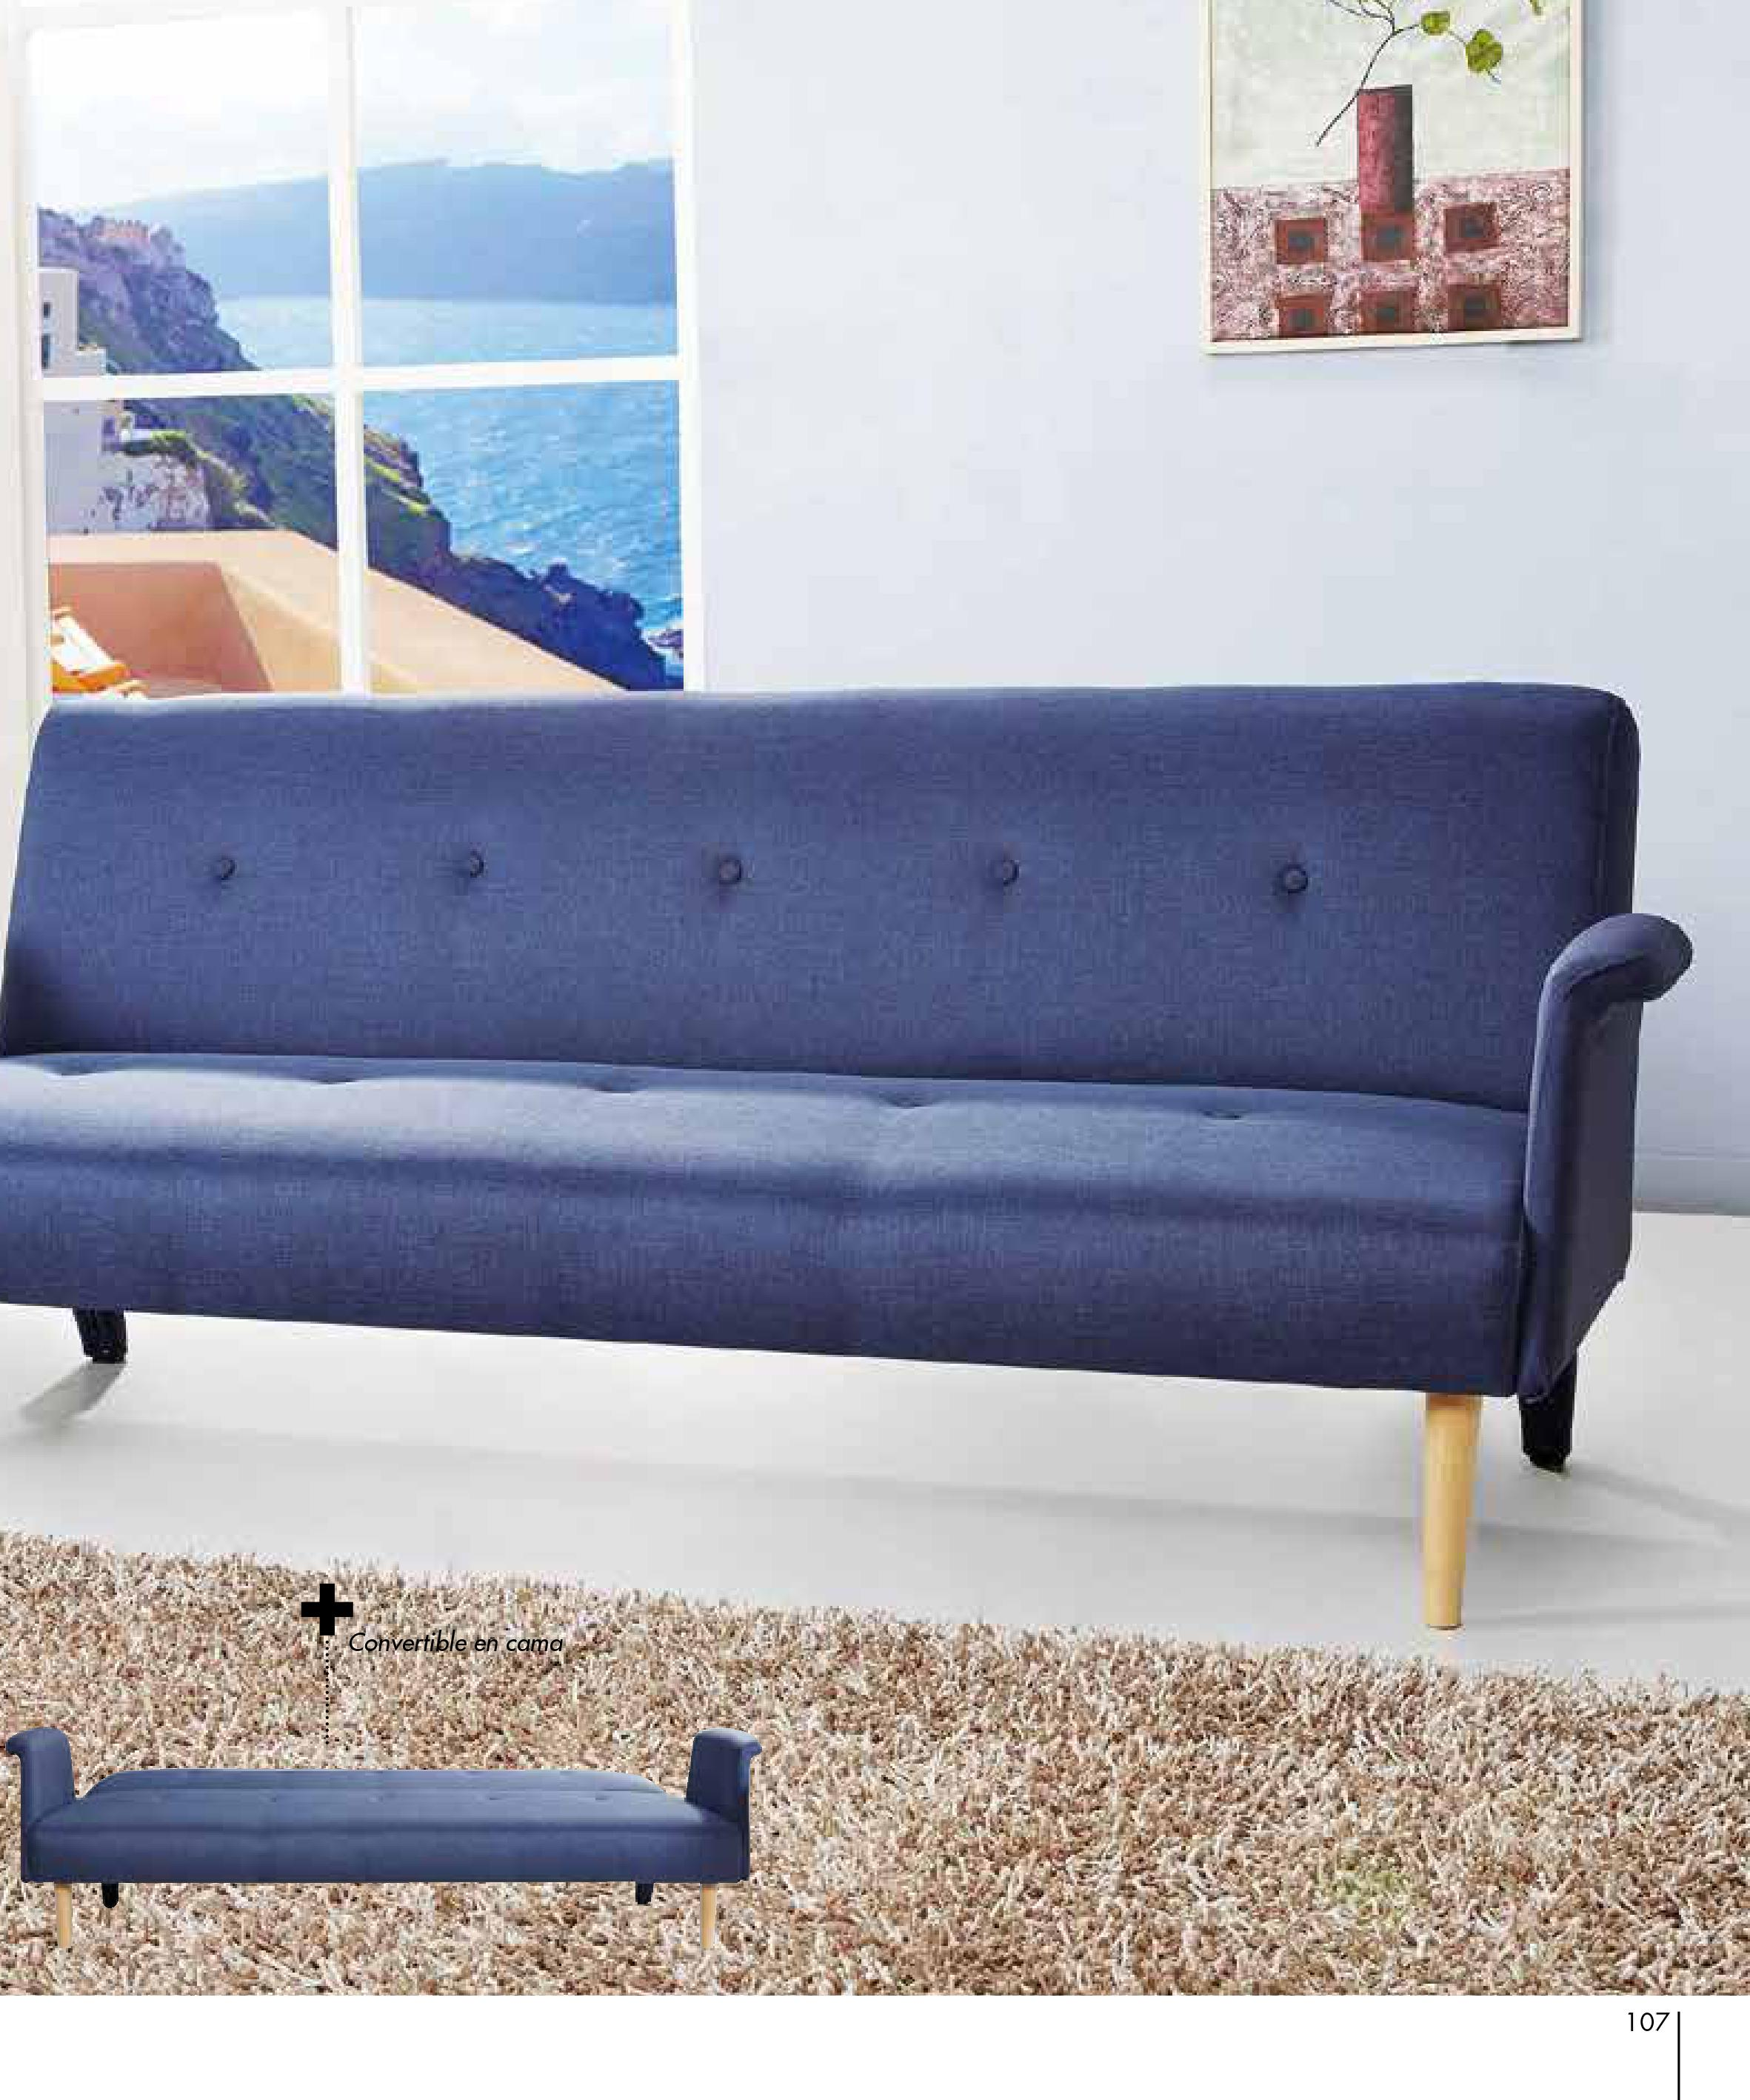 Sofas conforama 2015107 for Sofas conforama catalogo